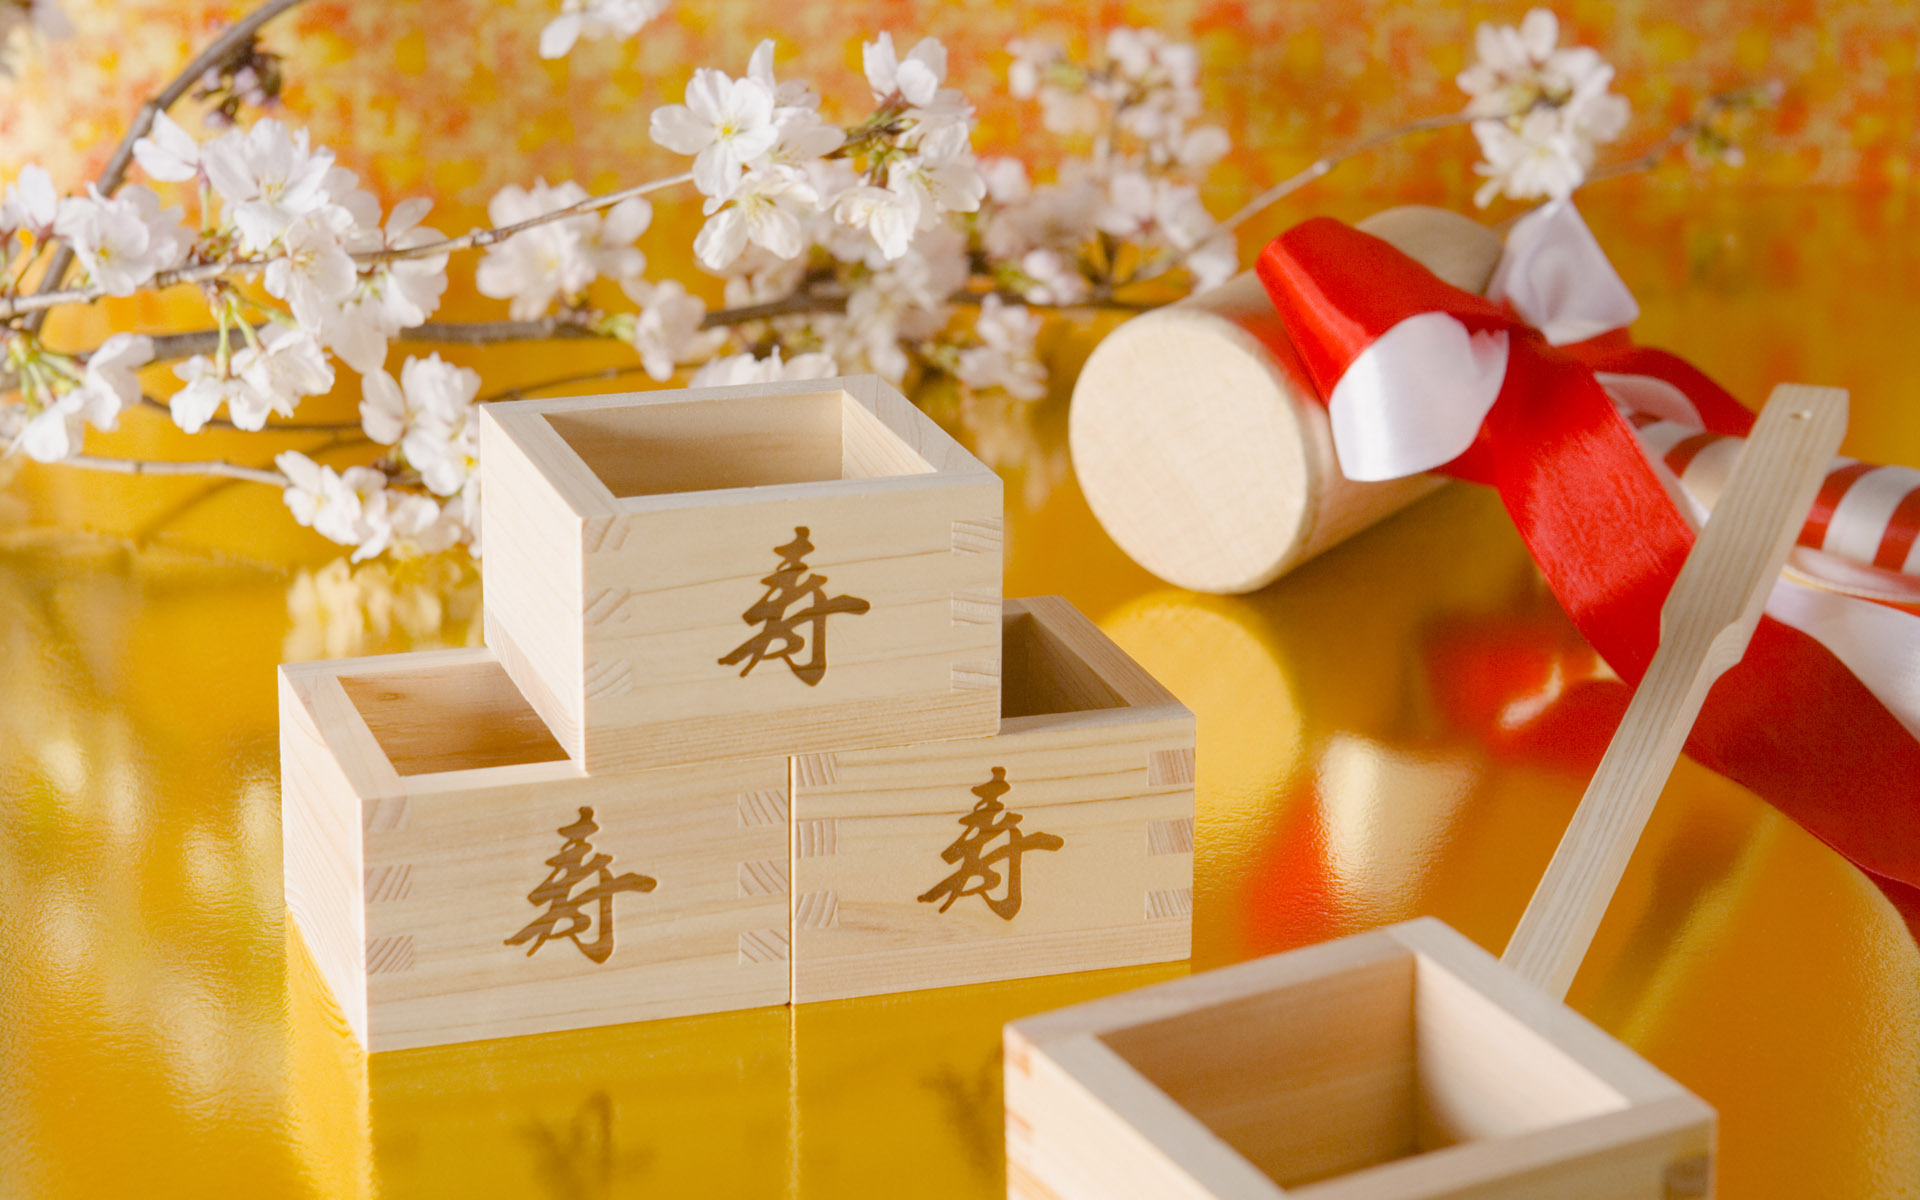 Japanese New Year and cultural material 7436